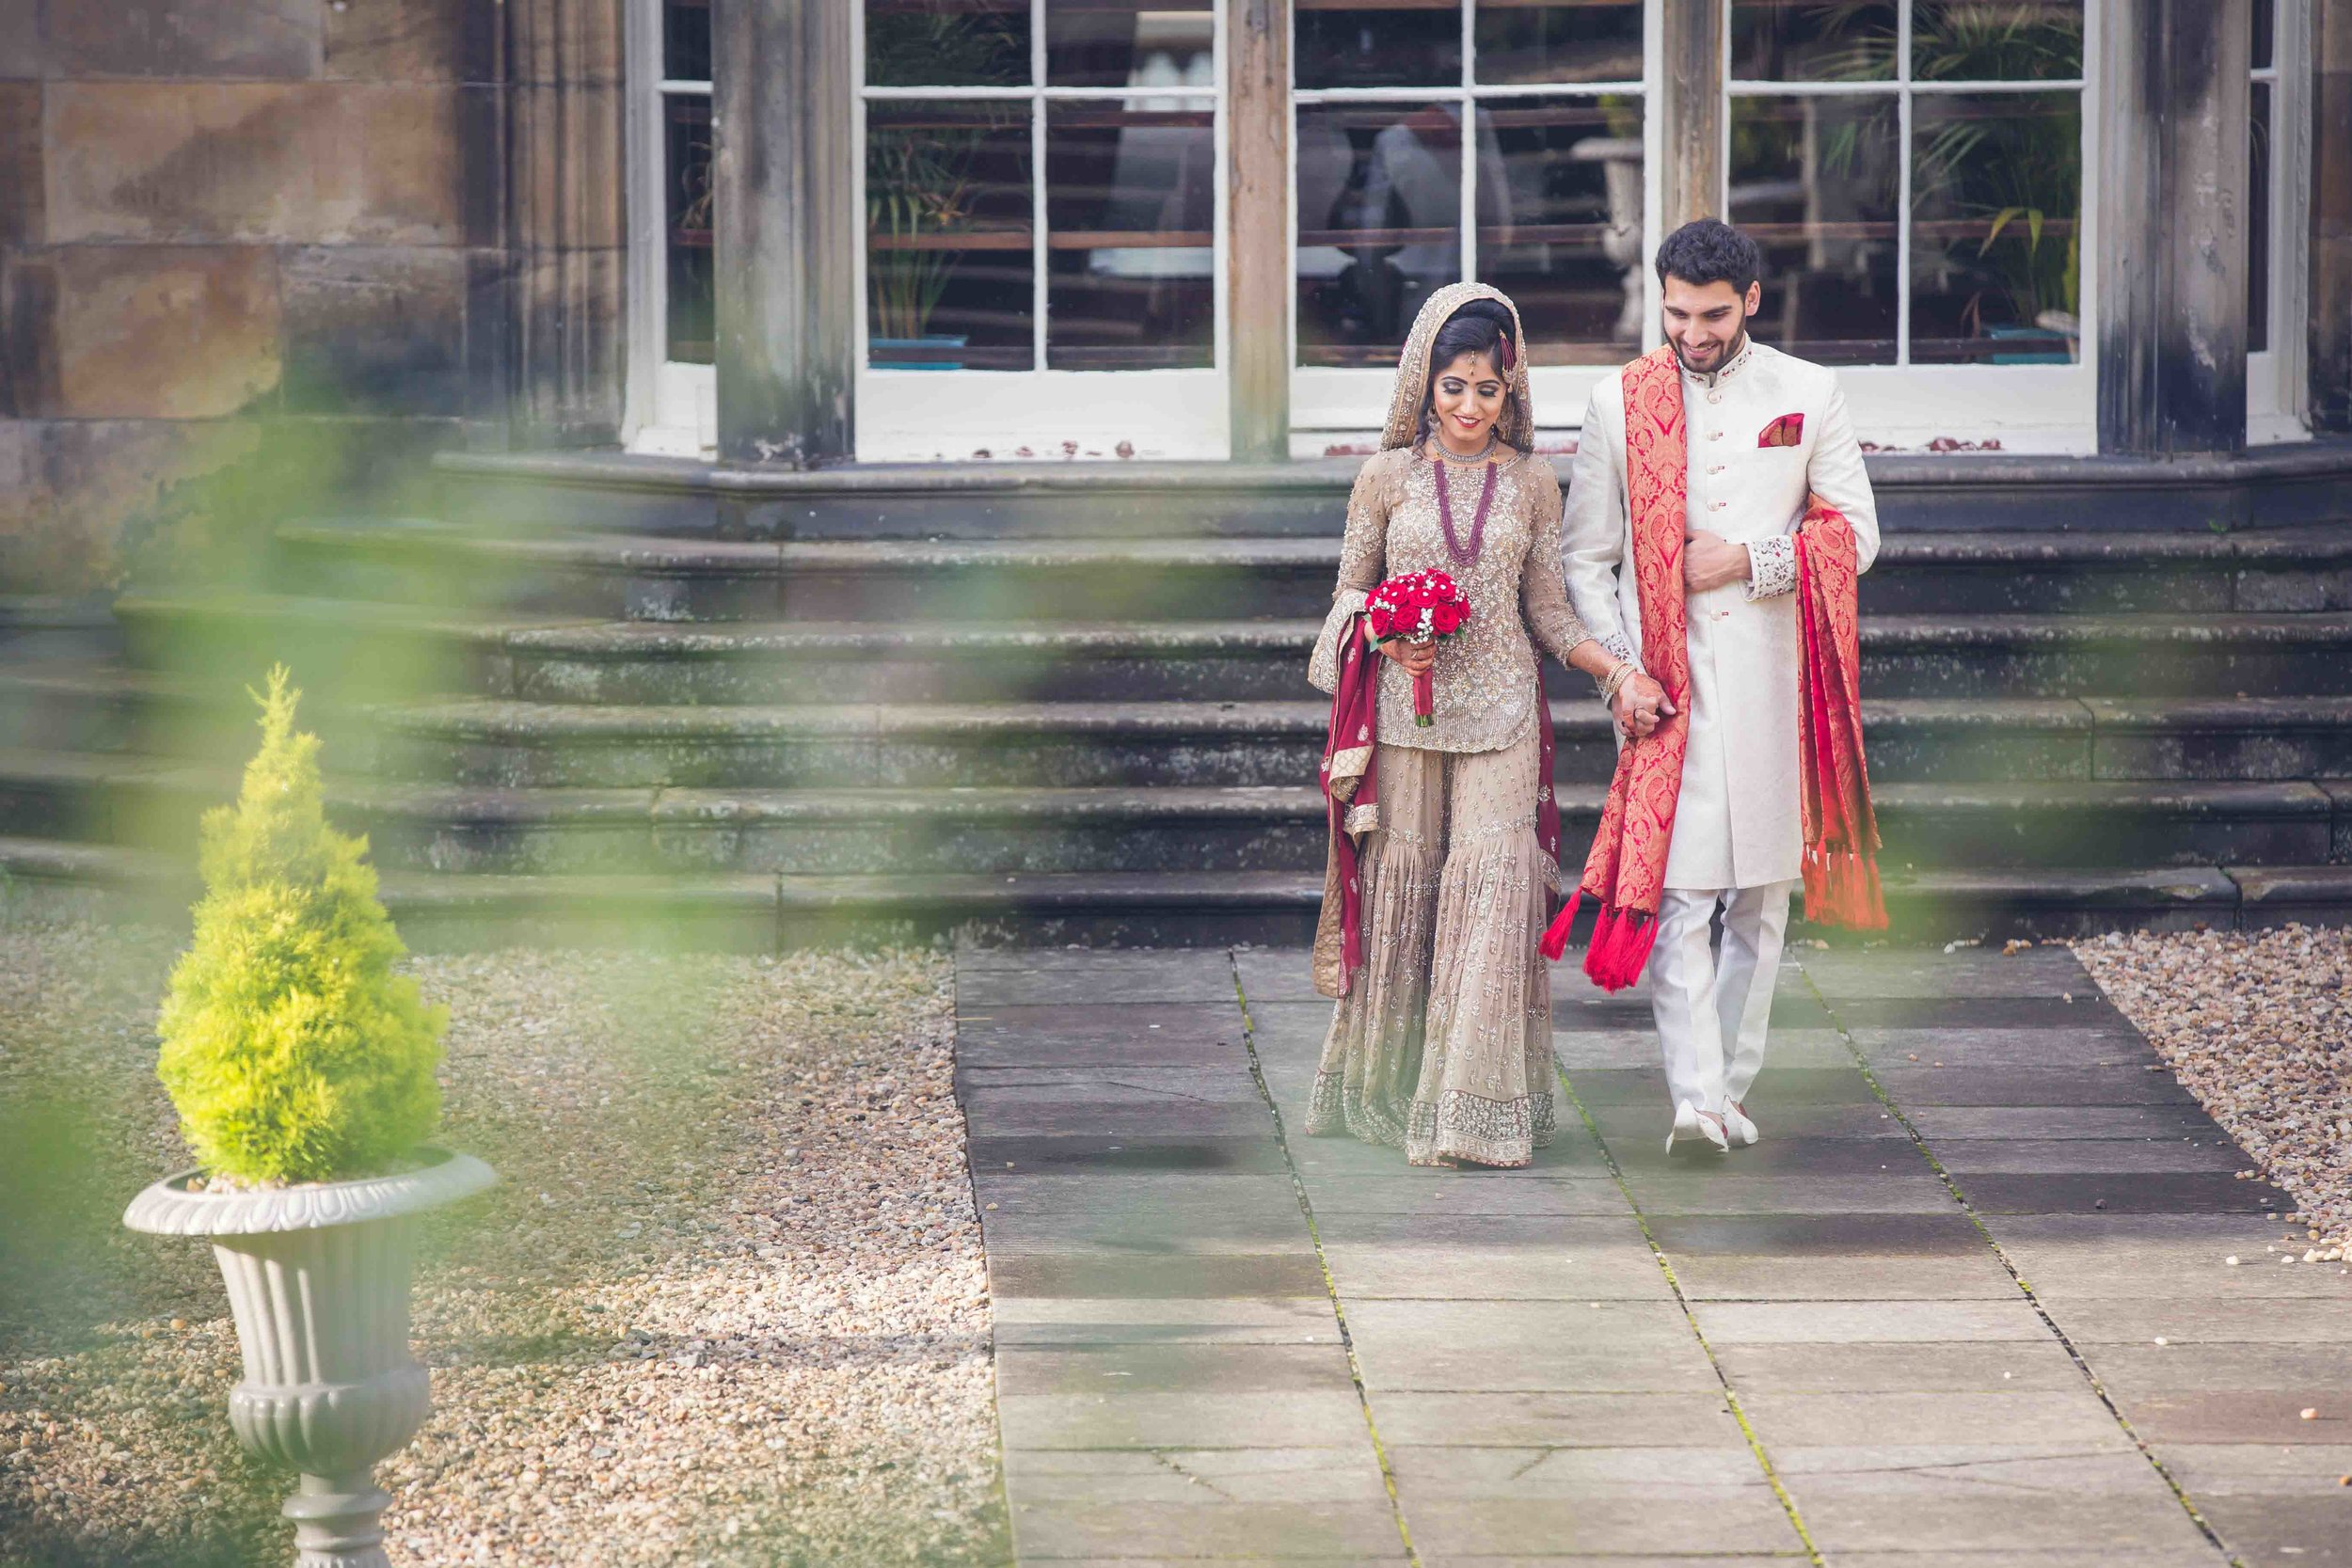 Opu Sultan Photography Asian wedding photography scotland edinburgh glasgow manchester birmingham london-249.jpg